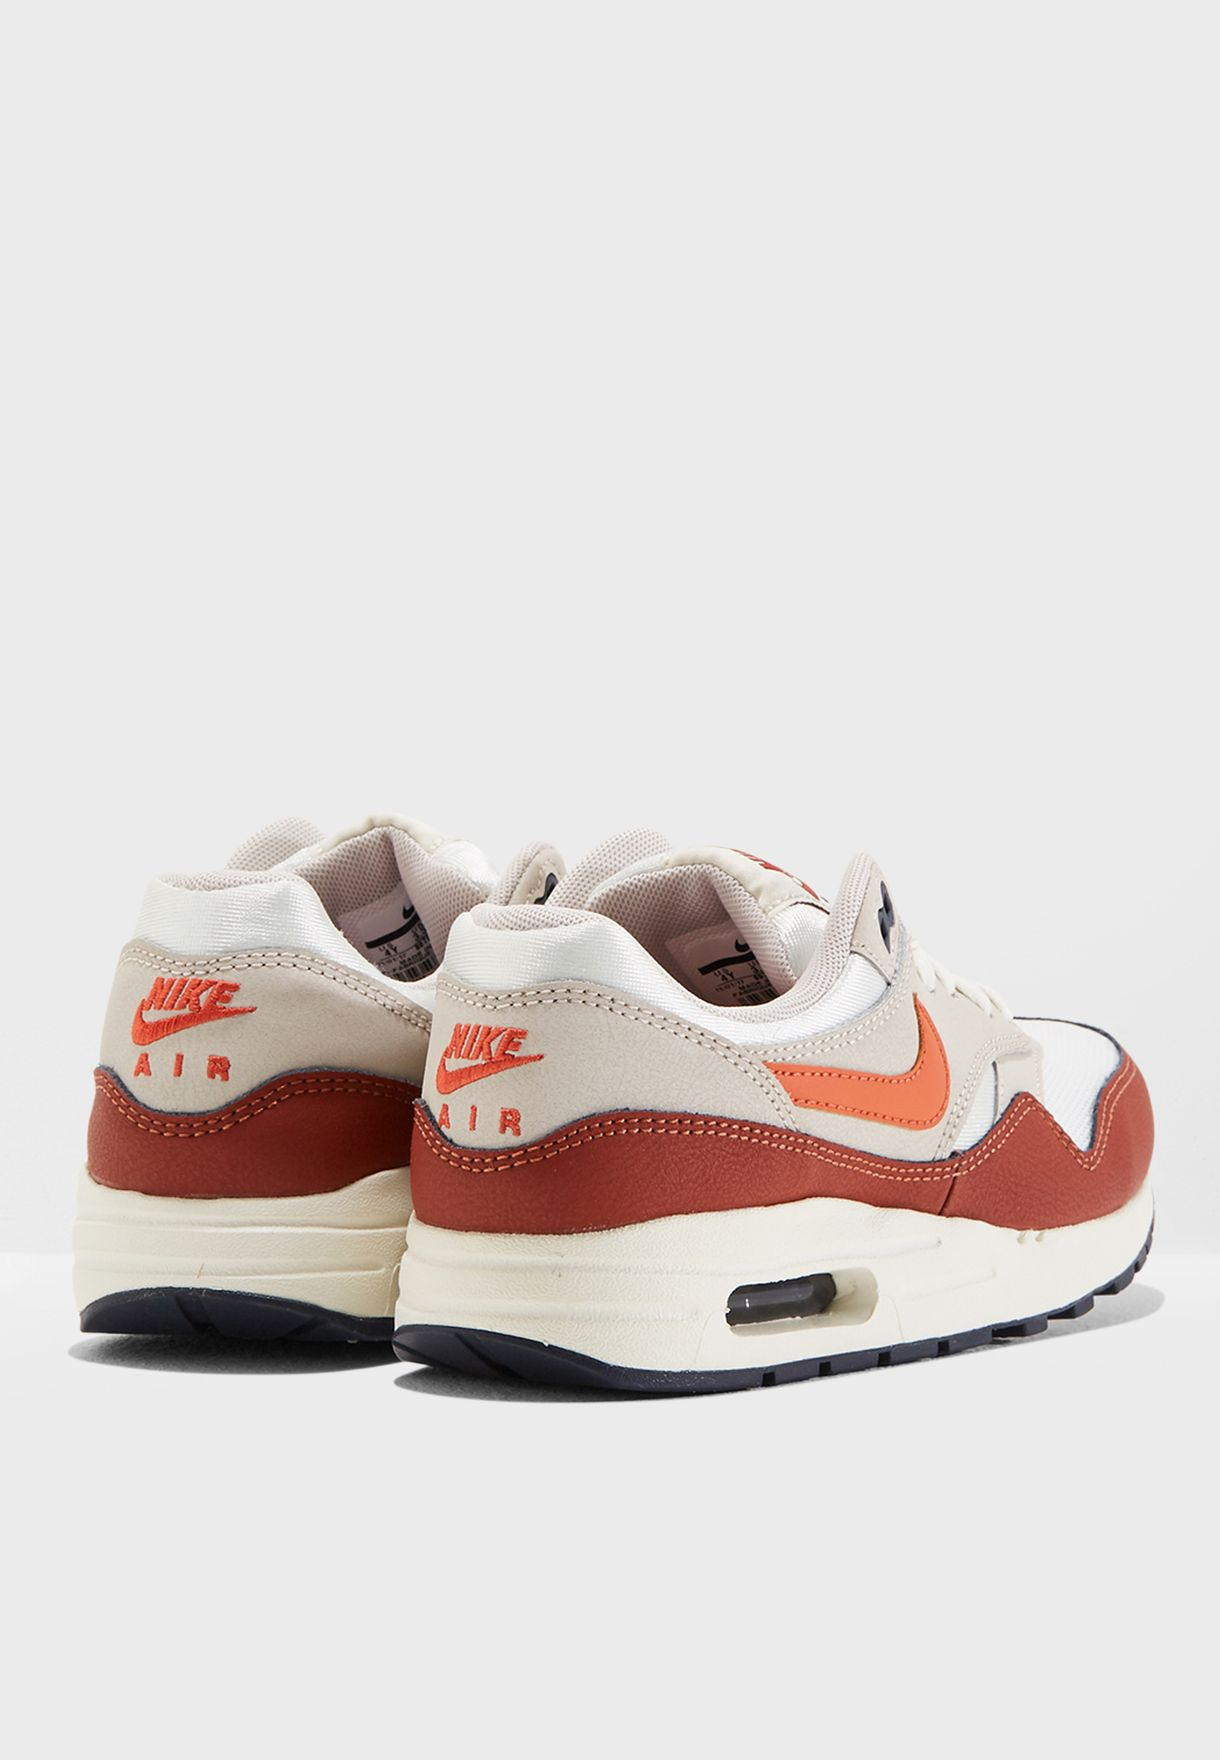 aef3c1f533 Shop Nike multicolor Youth Air Max 1 807602-103 for Kids in UAE ...